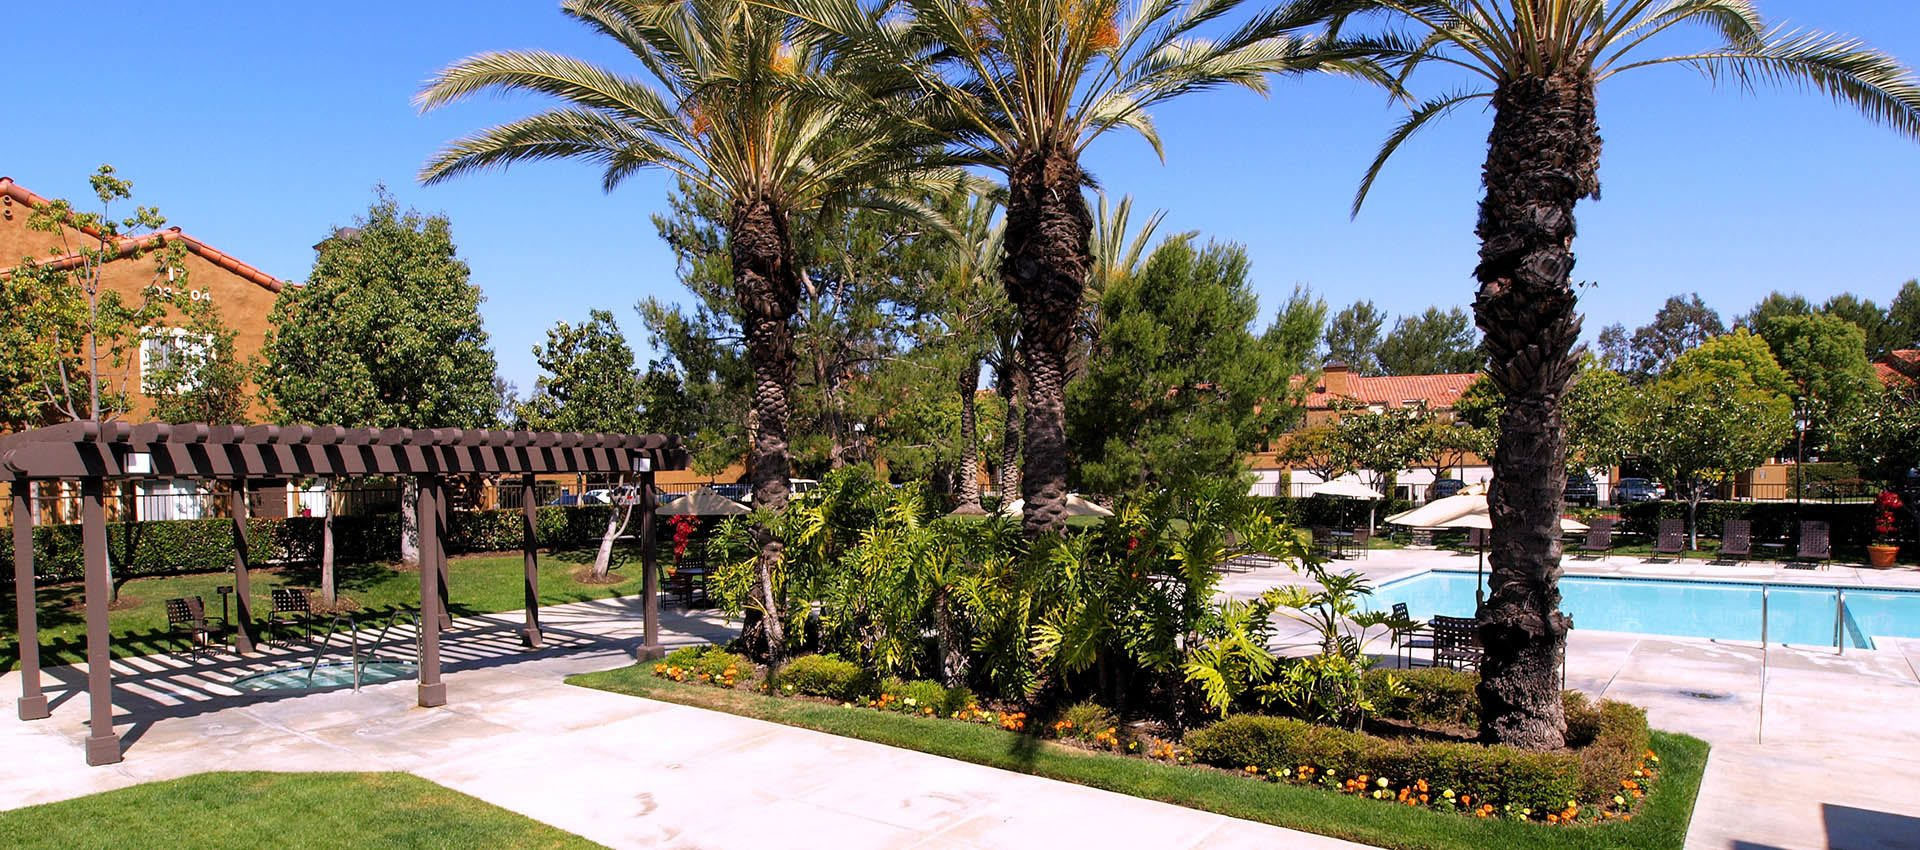 Arbor And Palms Near Pool at Hidden Hills Condominium Rentals in Laguna Niguel, CA